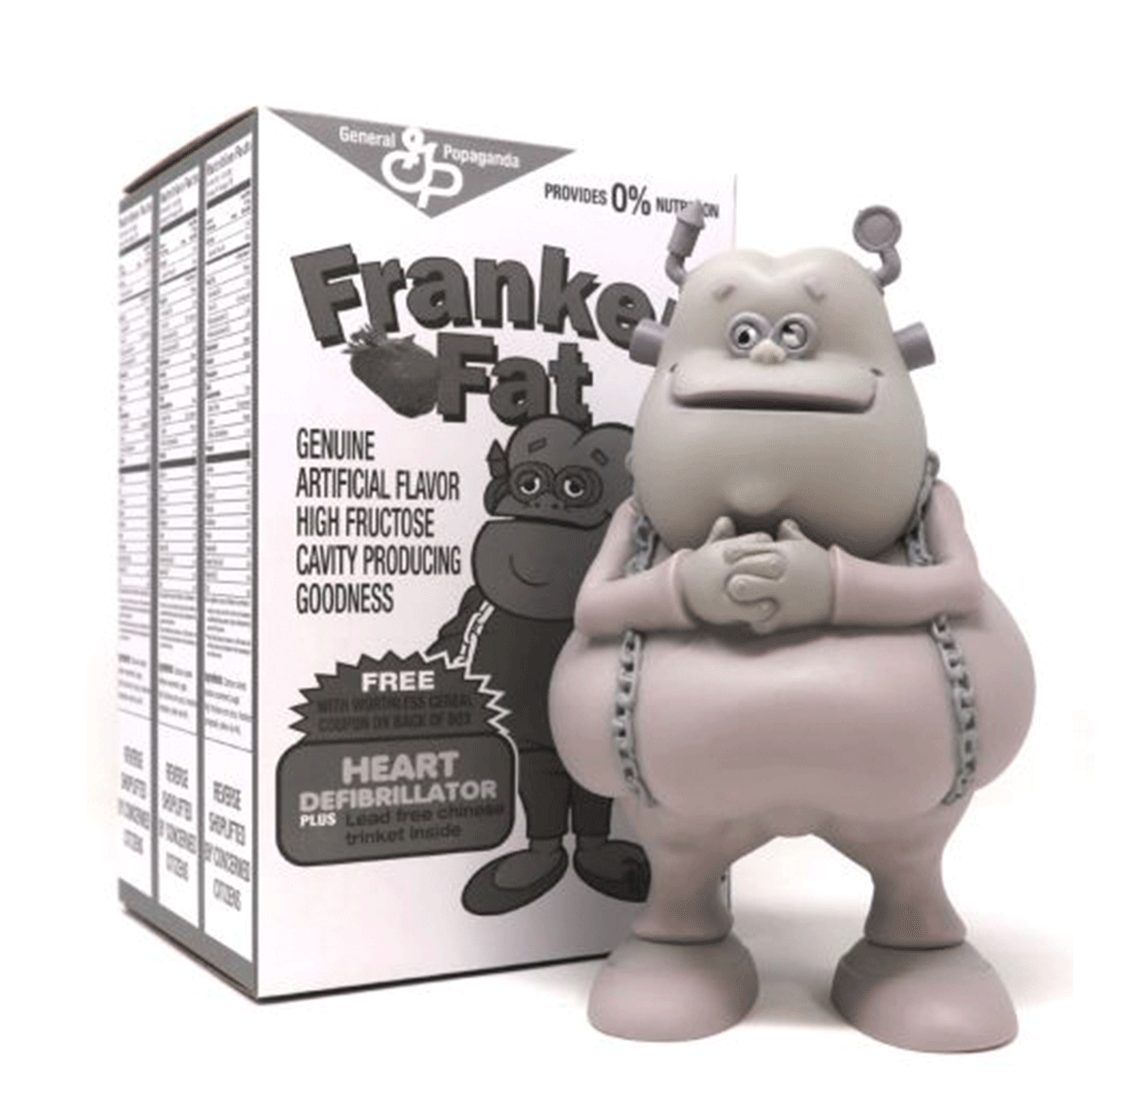 Franken Fat Monotone Edition by Ron English